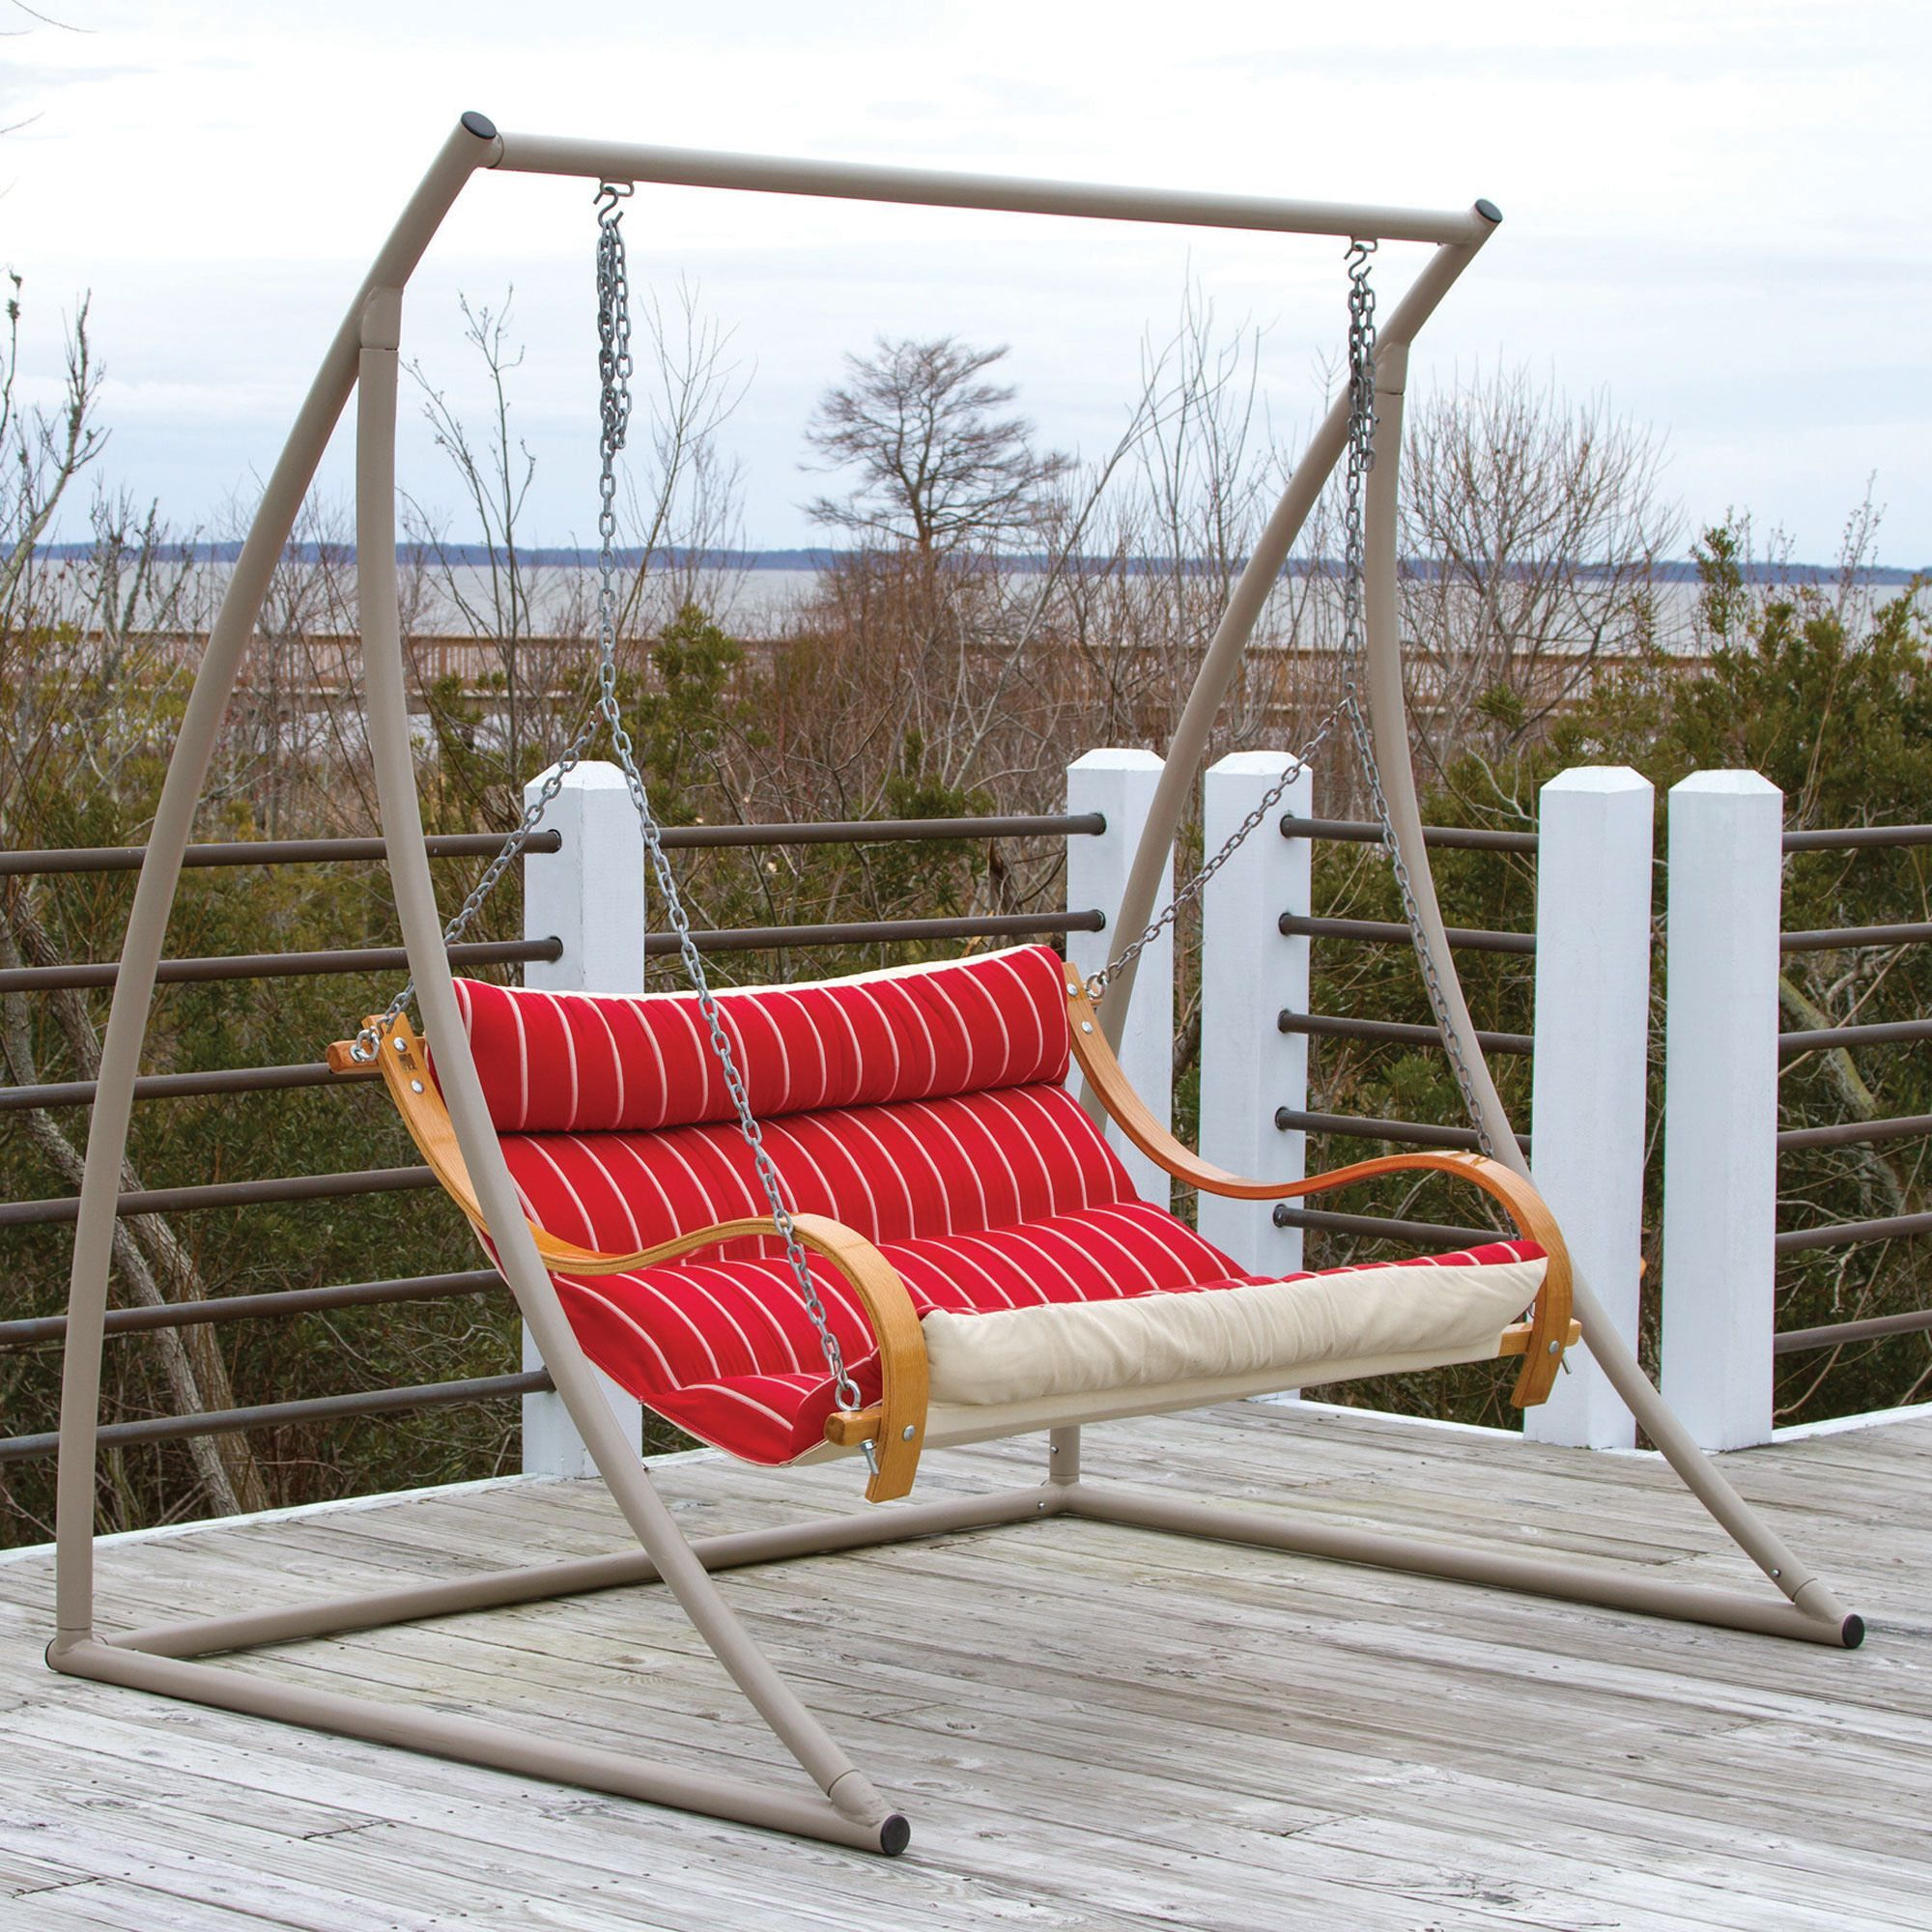 sky of hammock be photo with or swing frames outdoor good chairs for would frame ordinary x wooden arbor stand